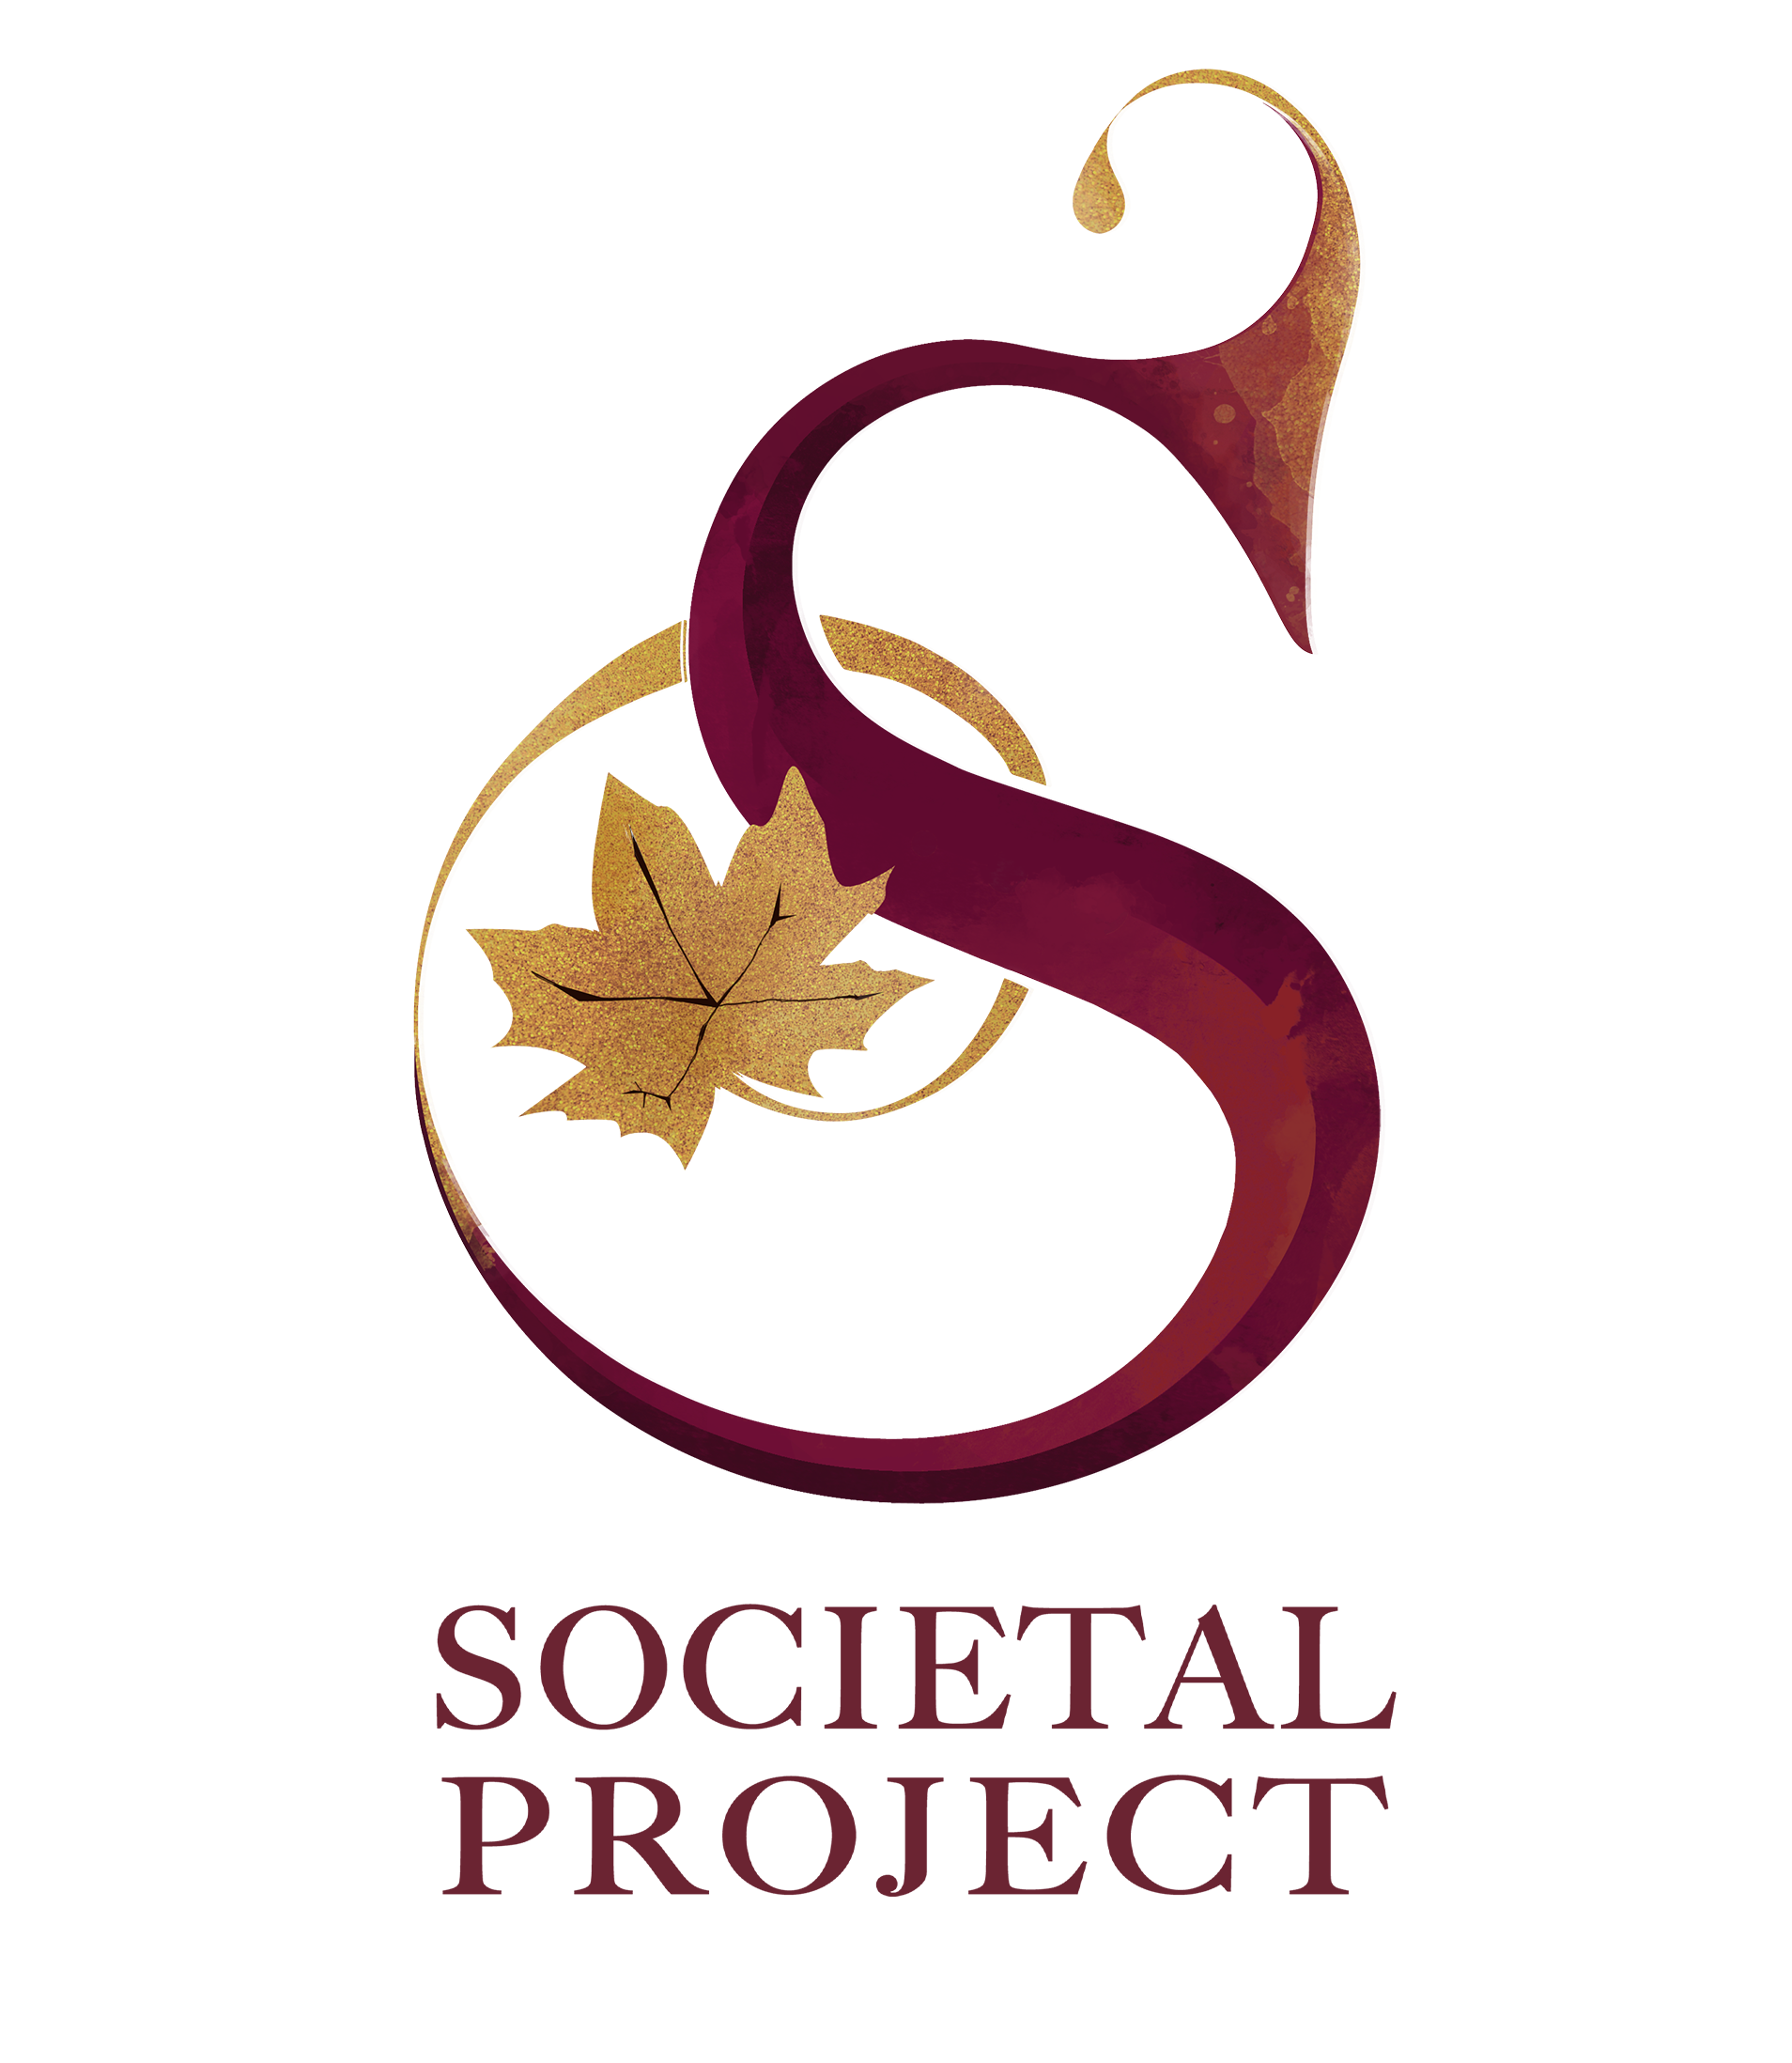 Societal Project Logo